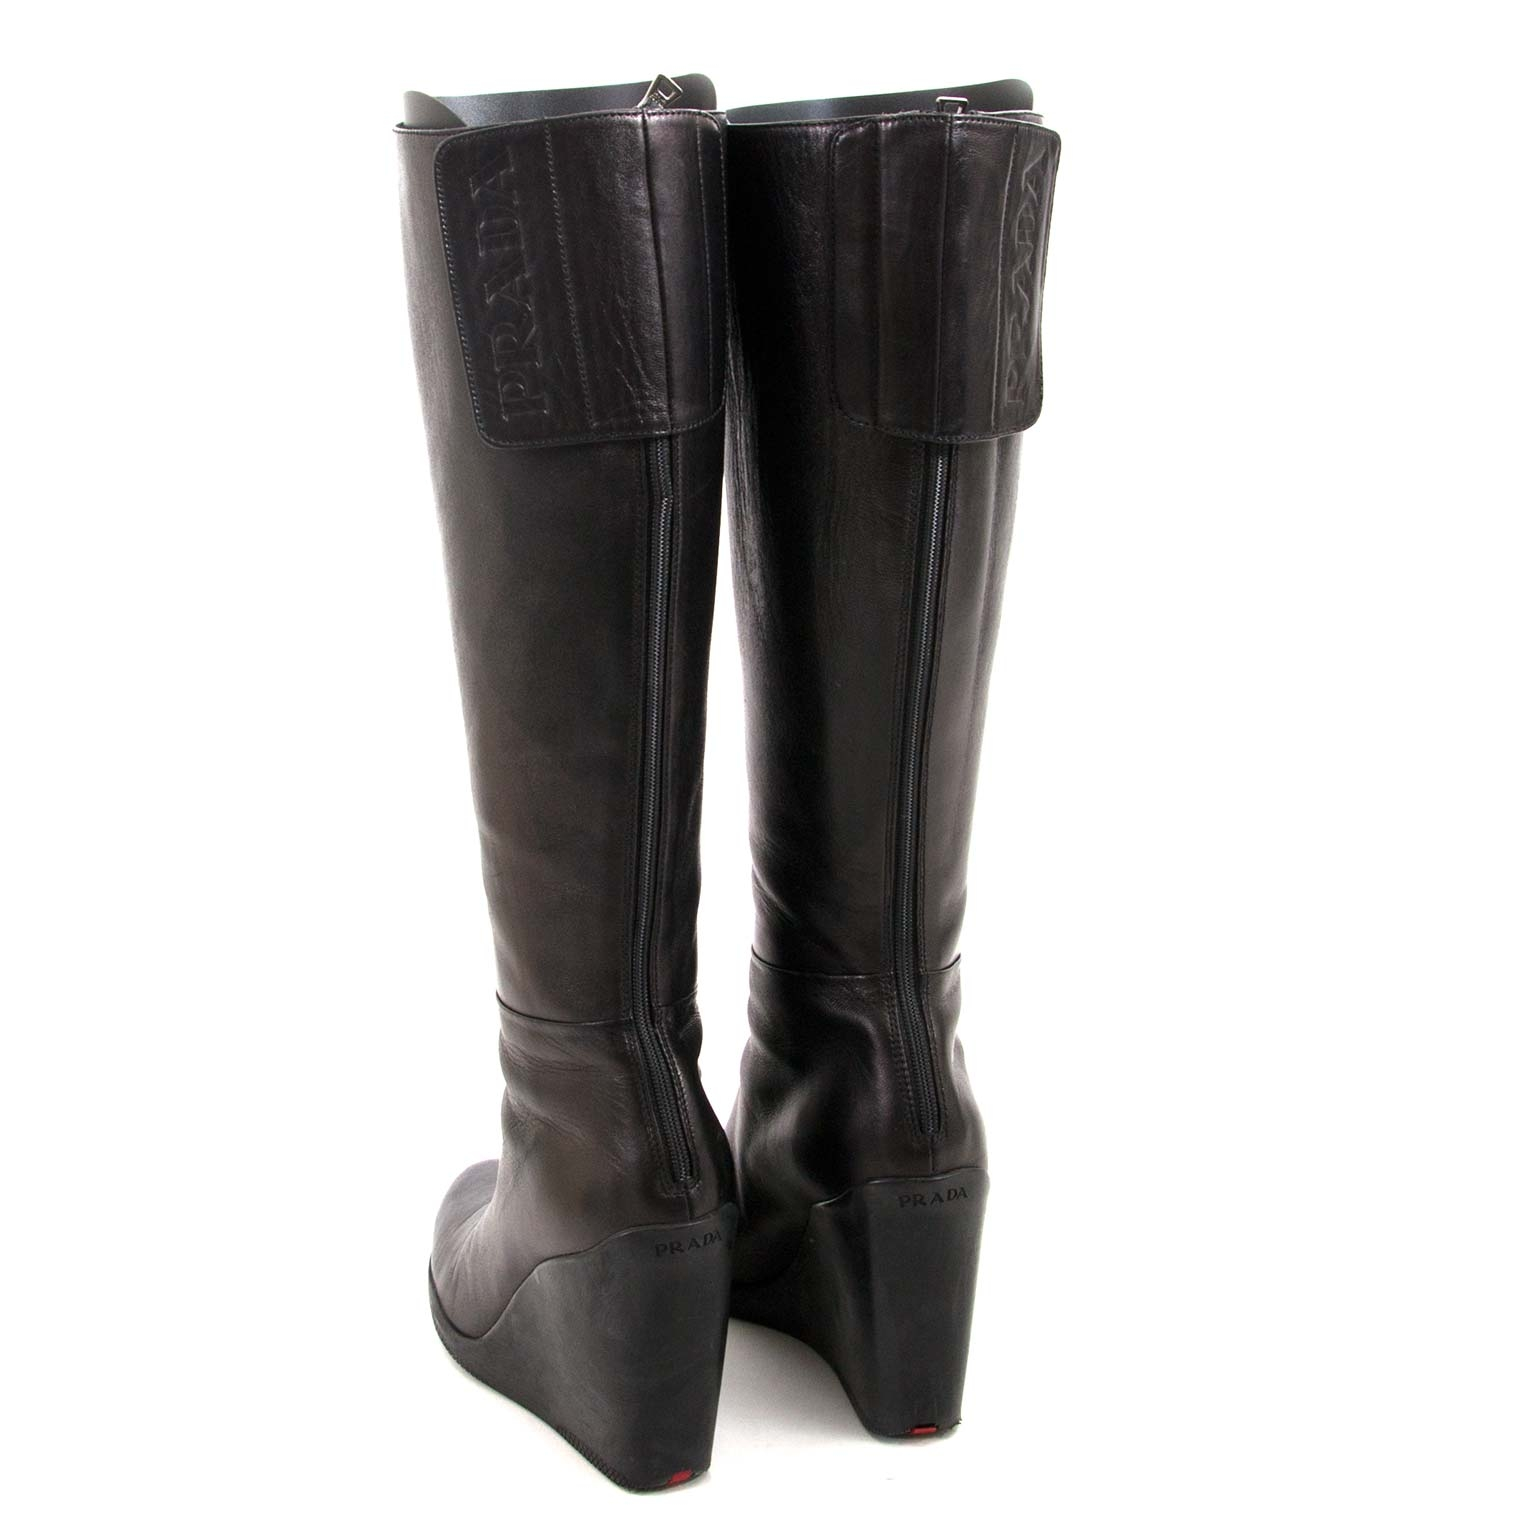 prada black leather wedge boots now for sale at labellov vintage fashion webshop belgium